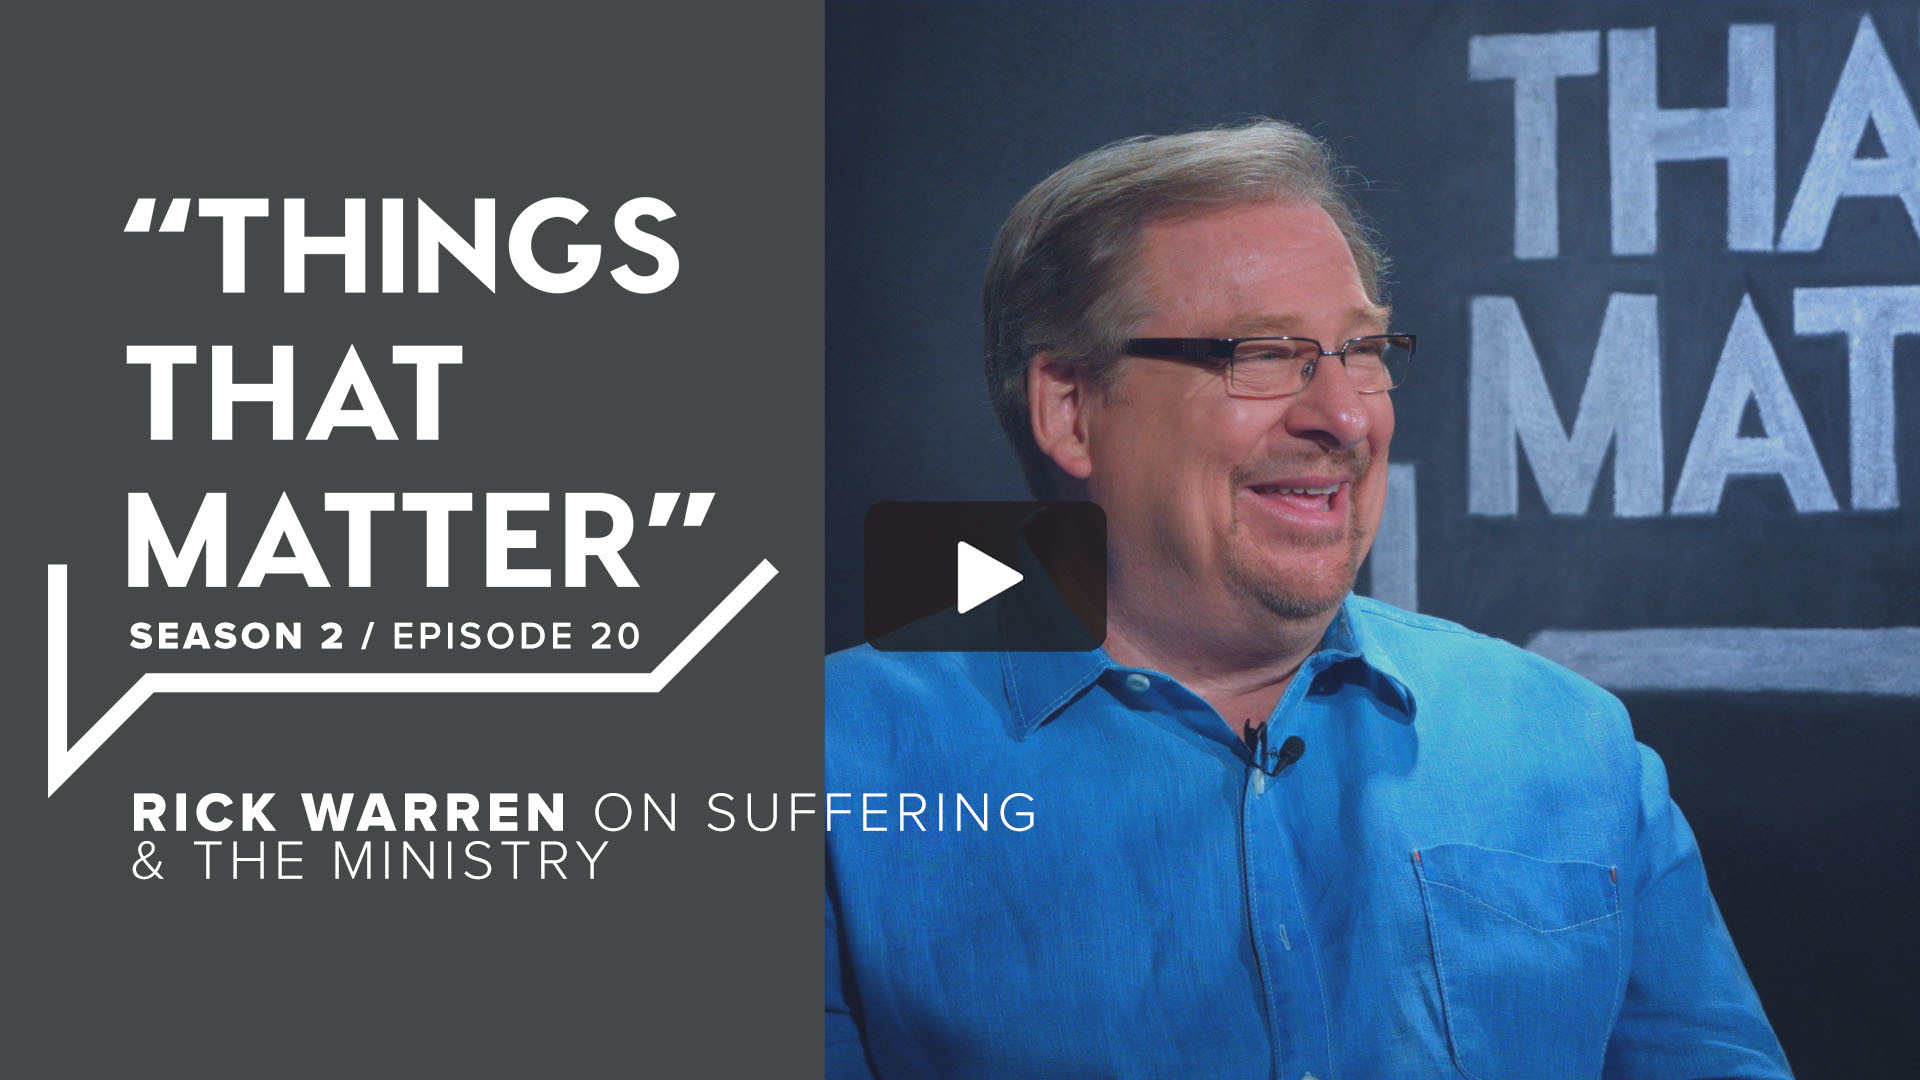 TTM S2 E20 - Rick Warren on Suffering & the Ministry